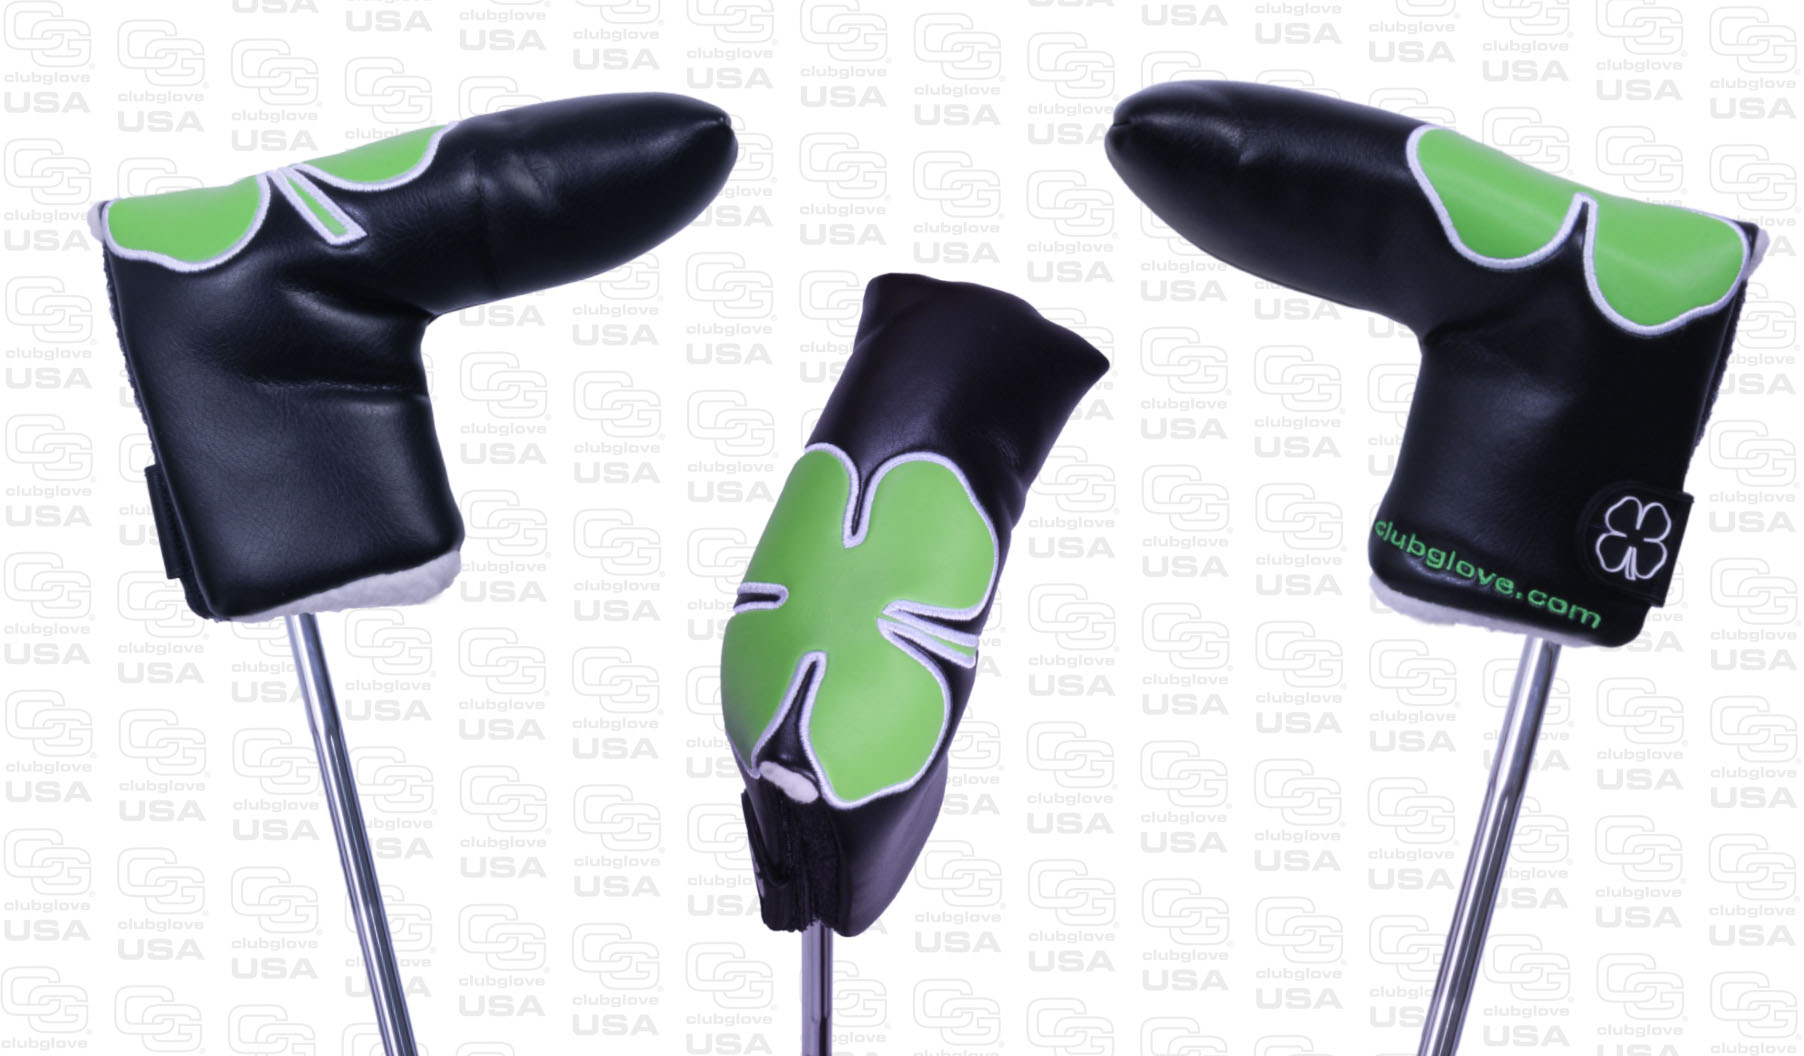 2015 Irish Putter Covers